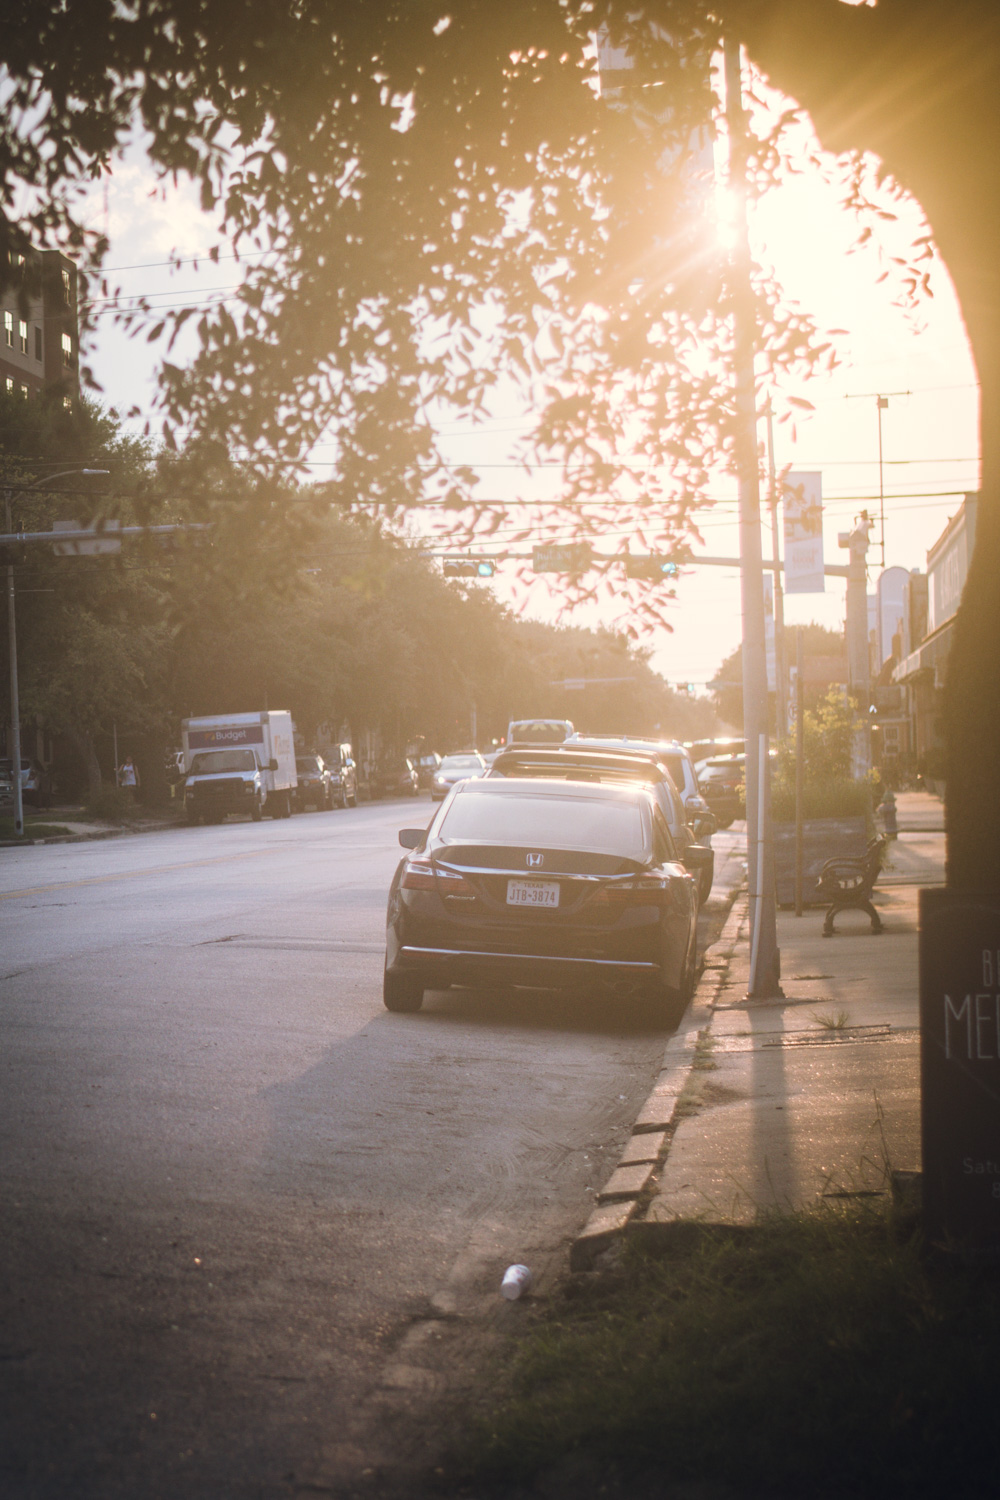 sunrise on 19th st. in Houston Heights